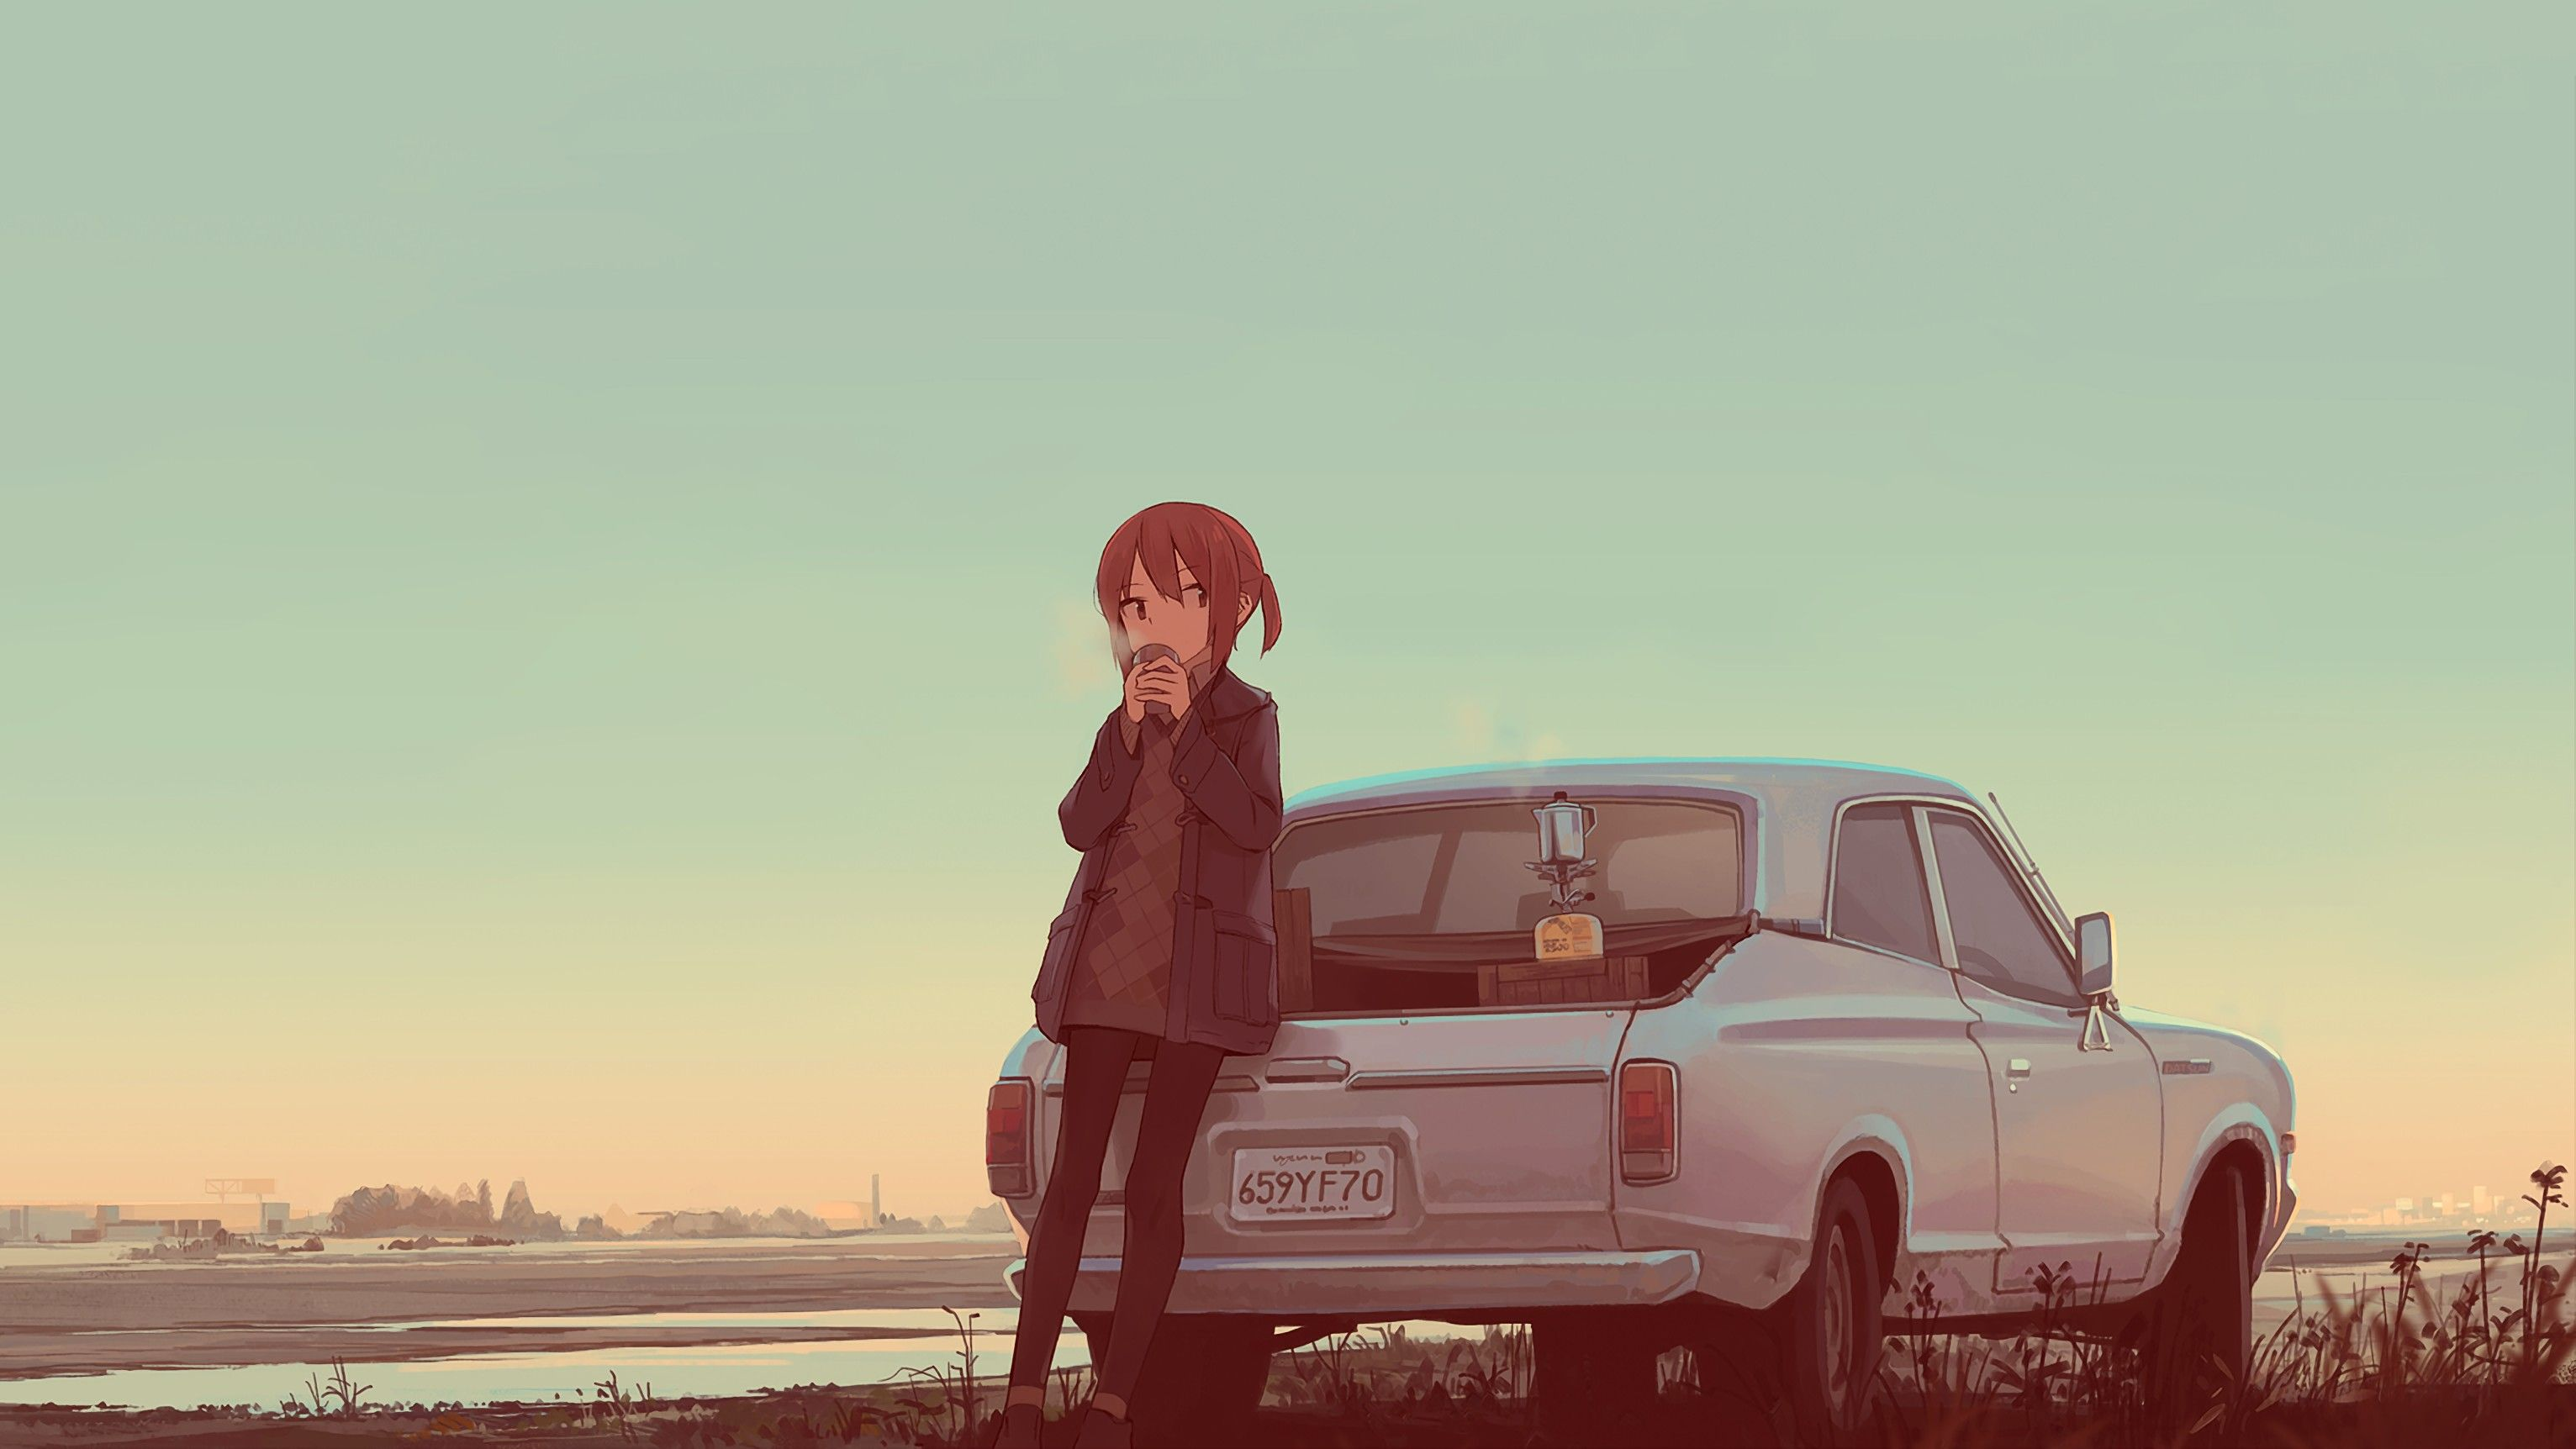 Car Anime Wallpapers   Top Car Anime Backgrounds 3064x1724